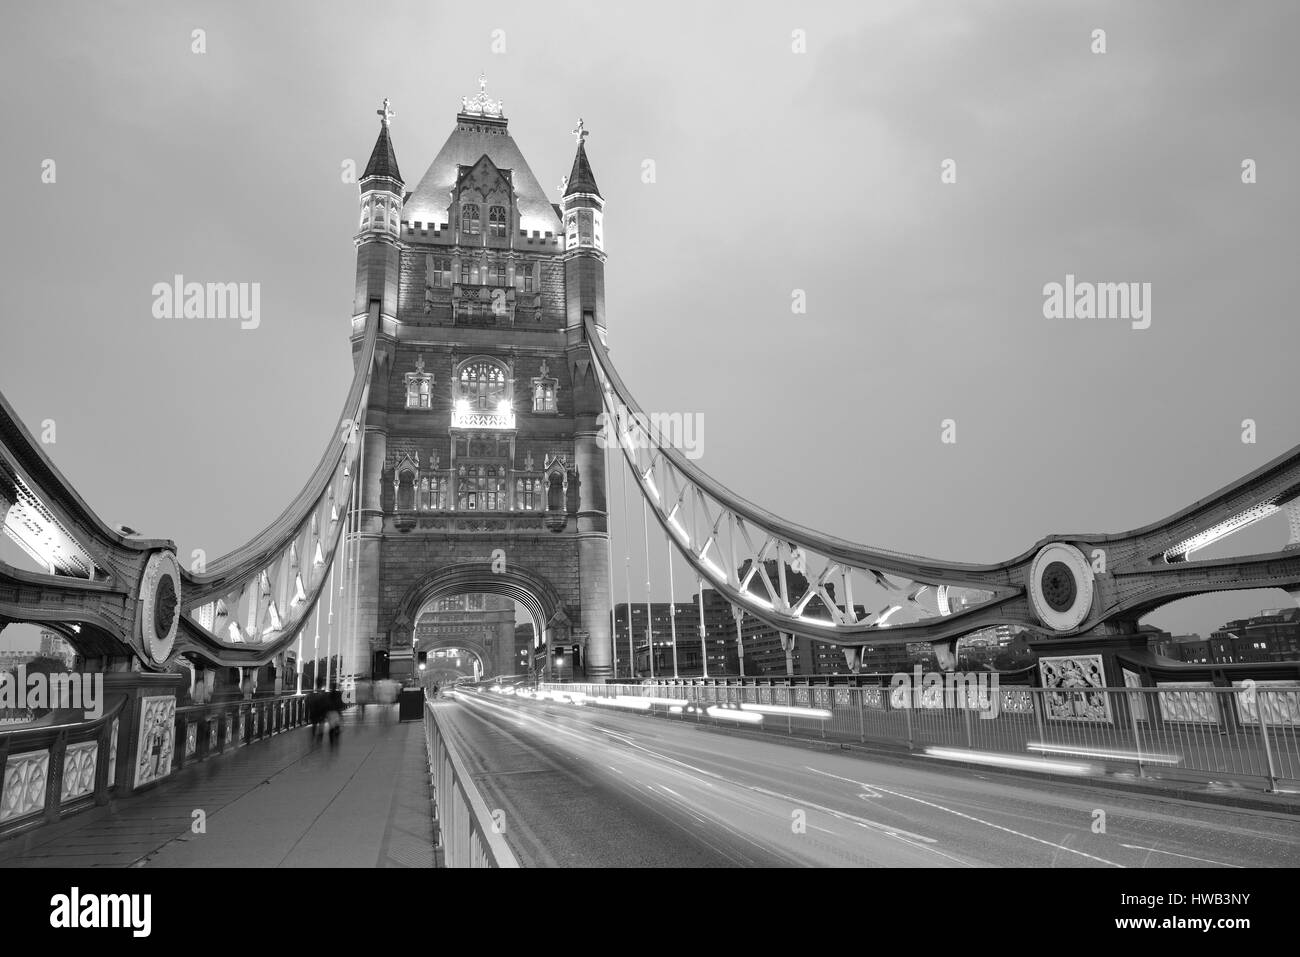 Tower Bridge in London as the famous landmark in black and white - Stock Image